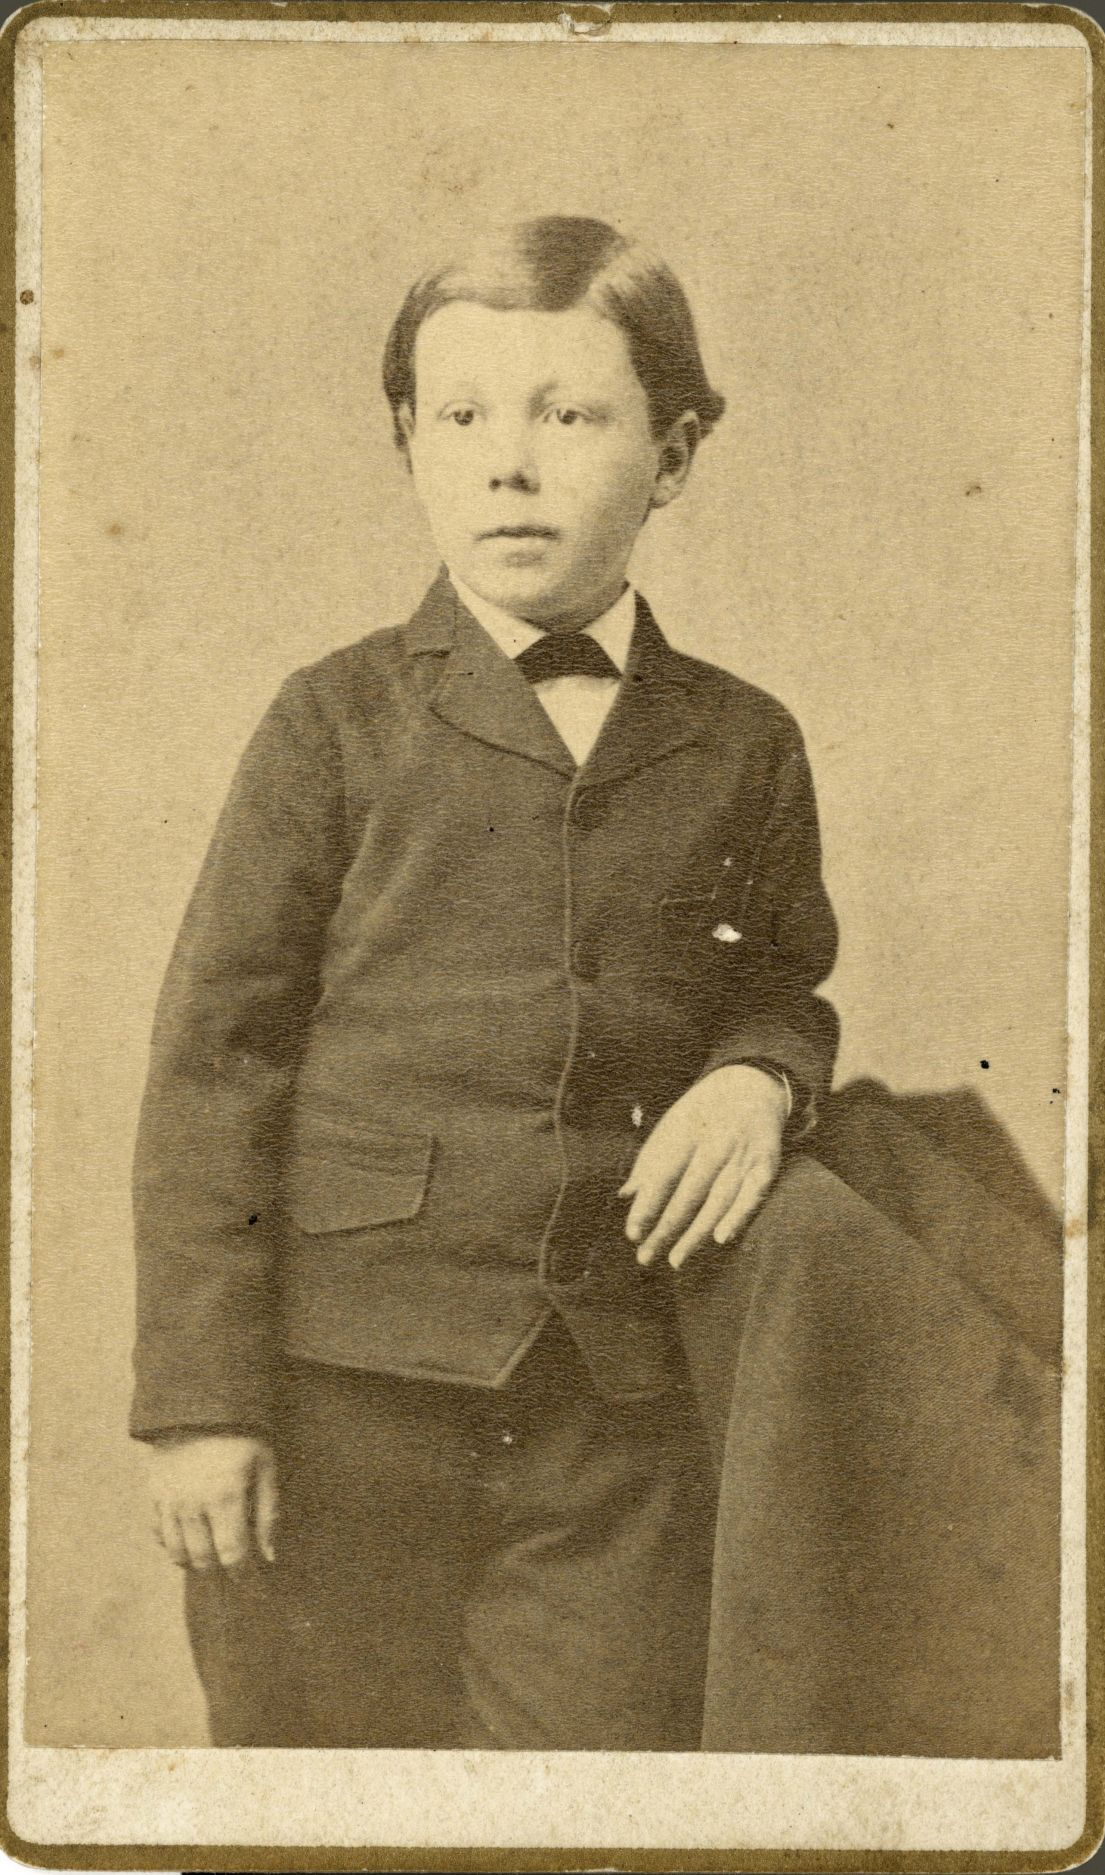 Frank Lloyd Wright as a boy